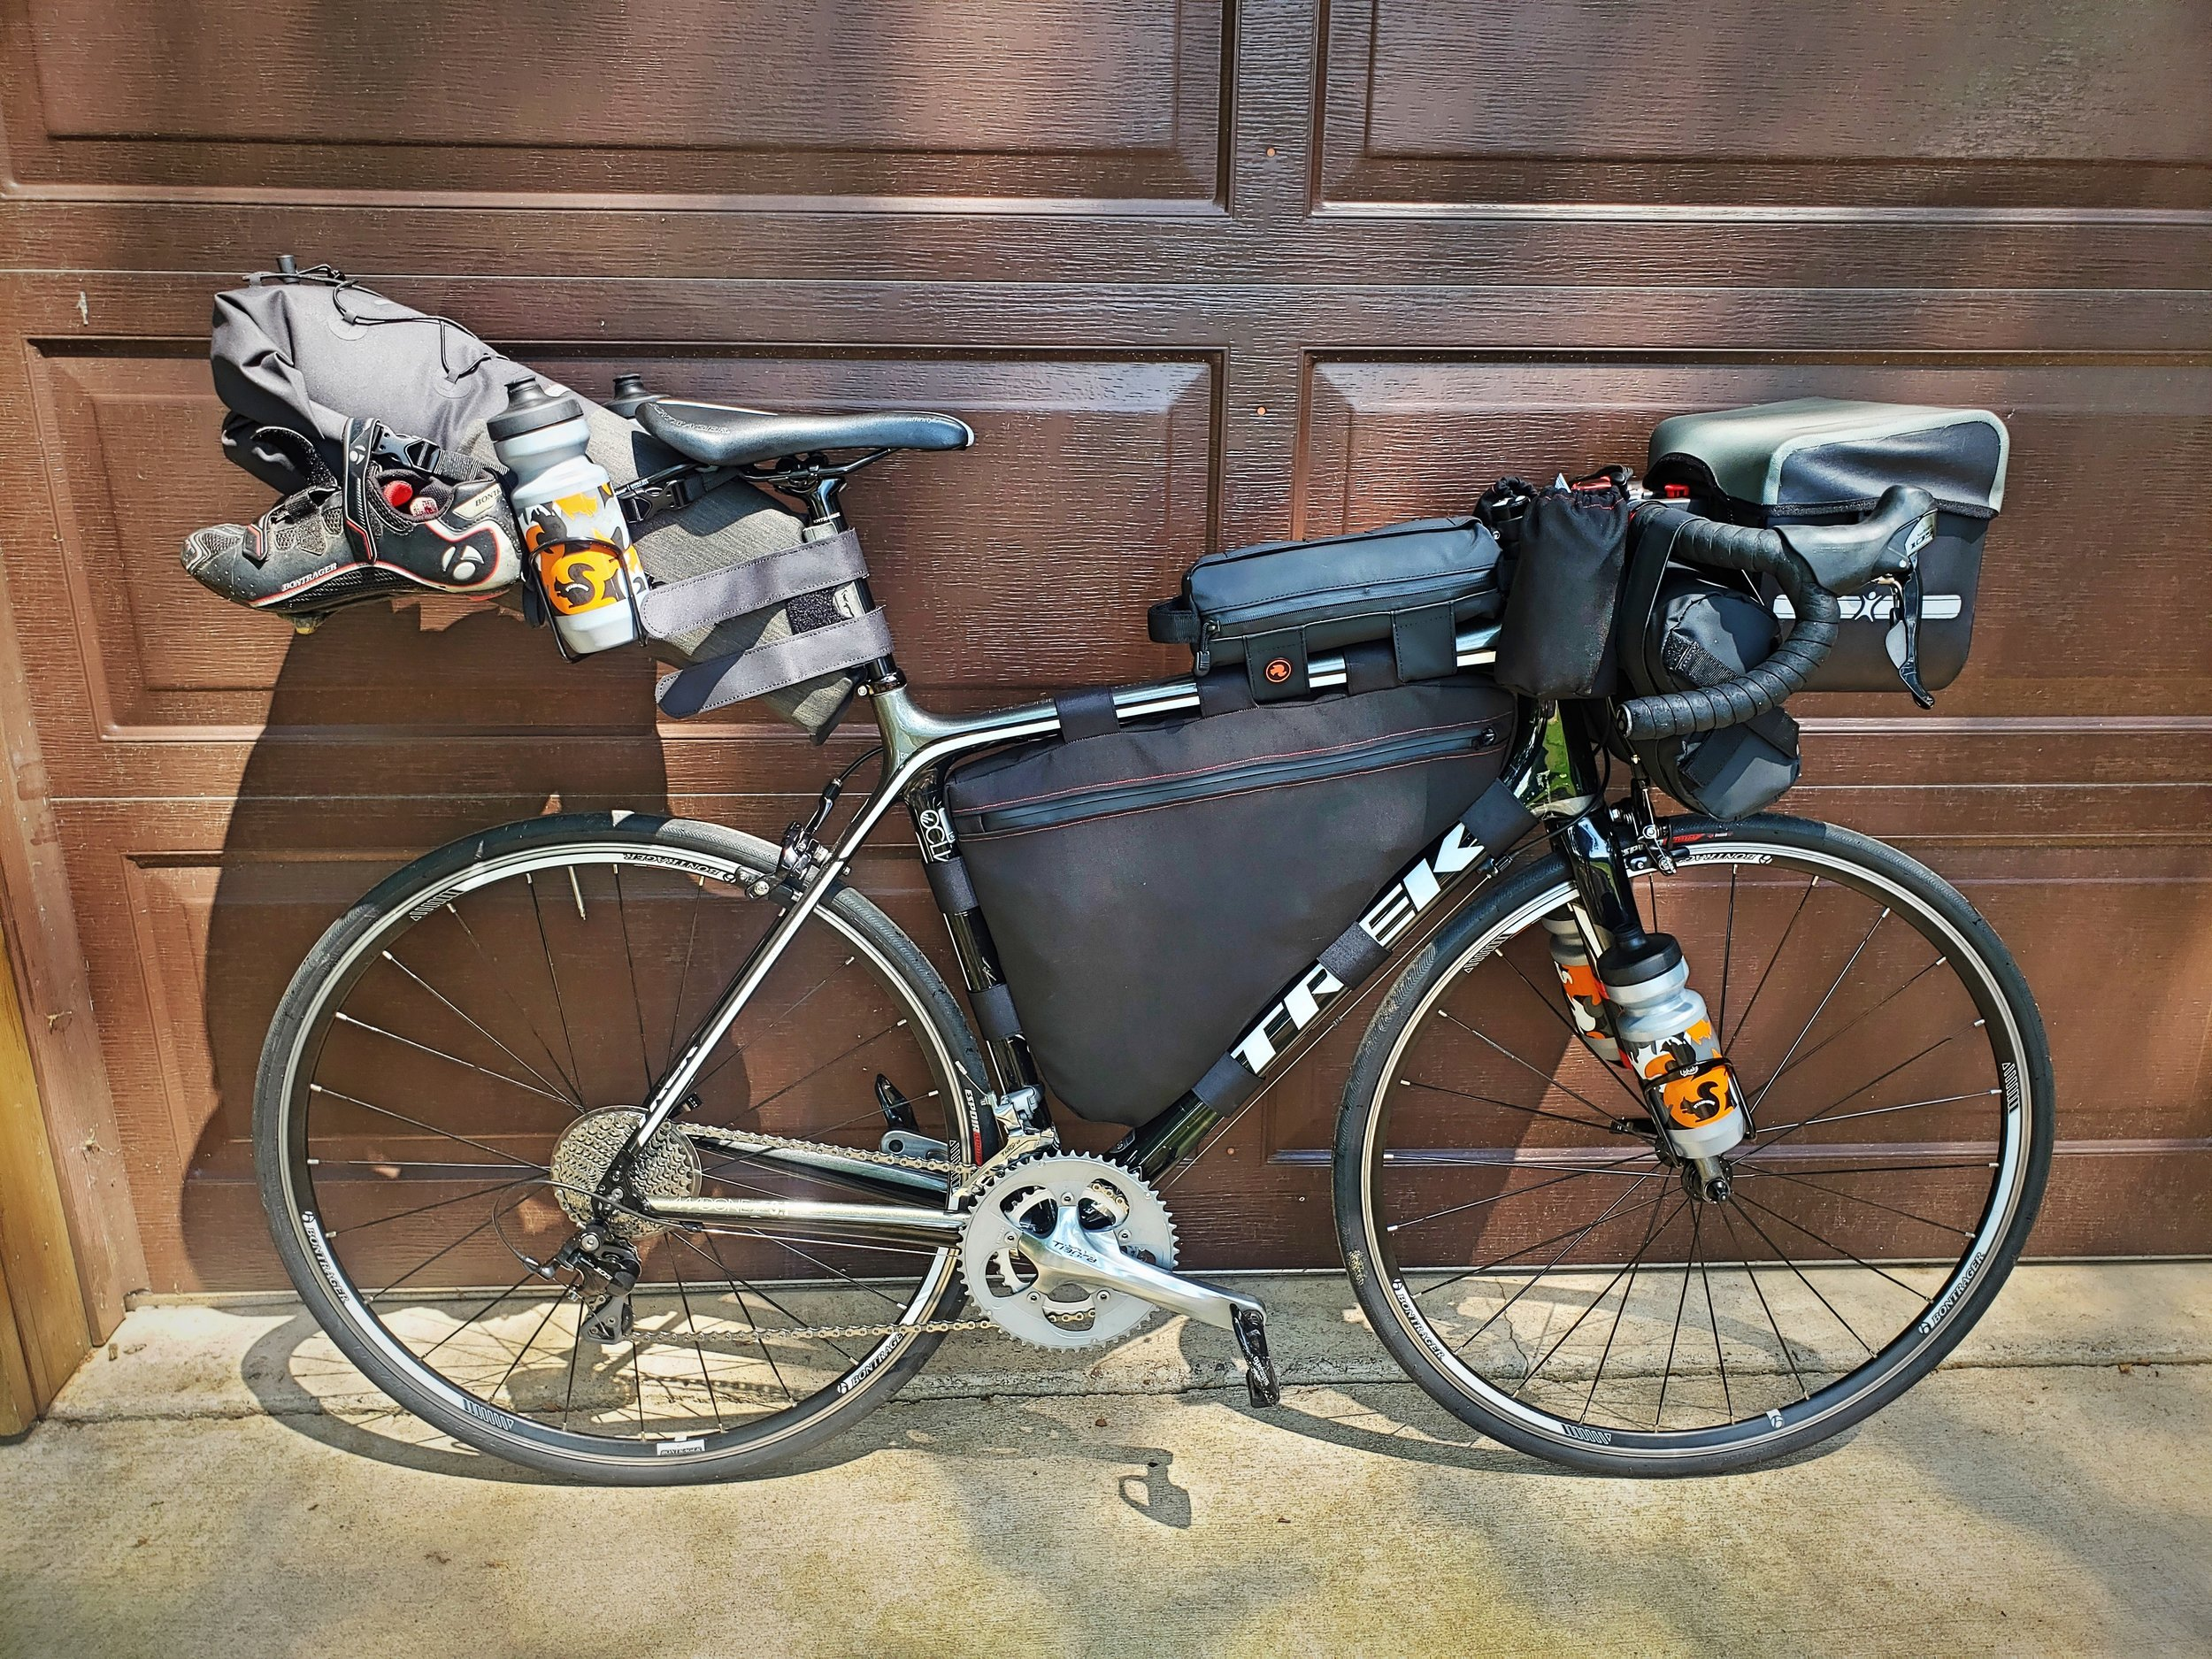 Making your own bags means you can design a bag that fits perfectly within the frame of your bike so that no frame is wasted.